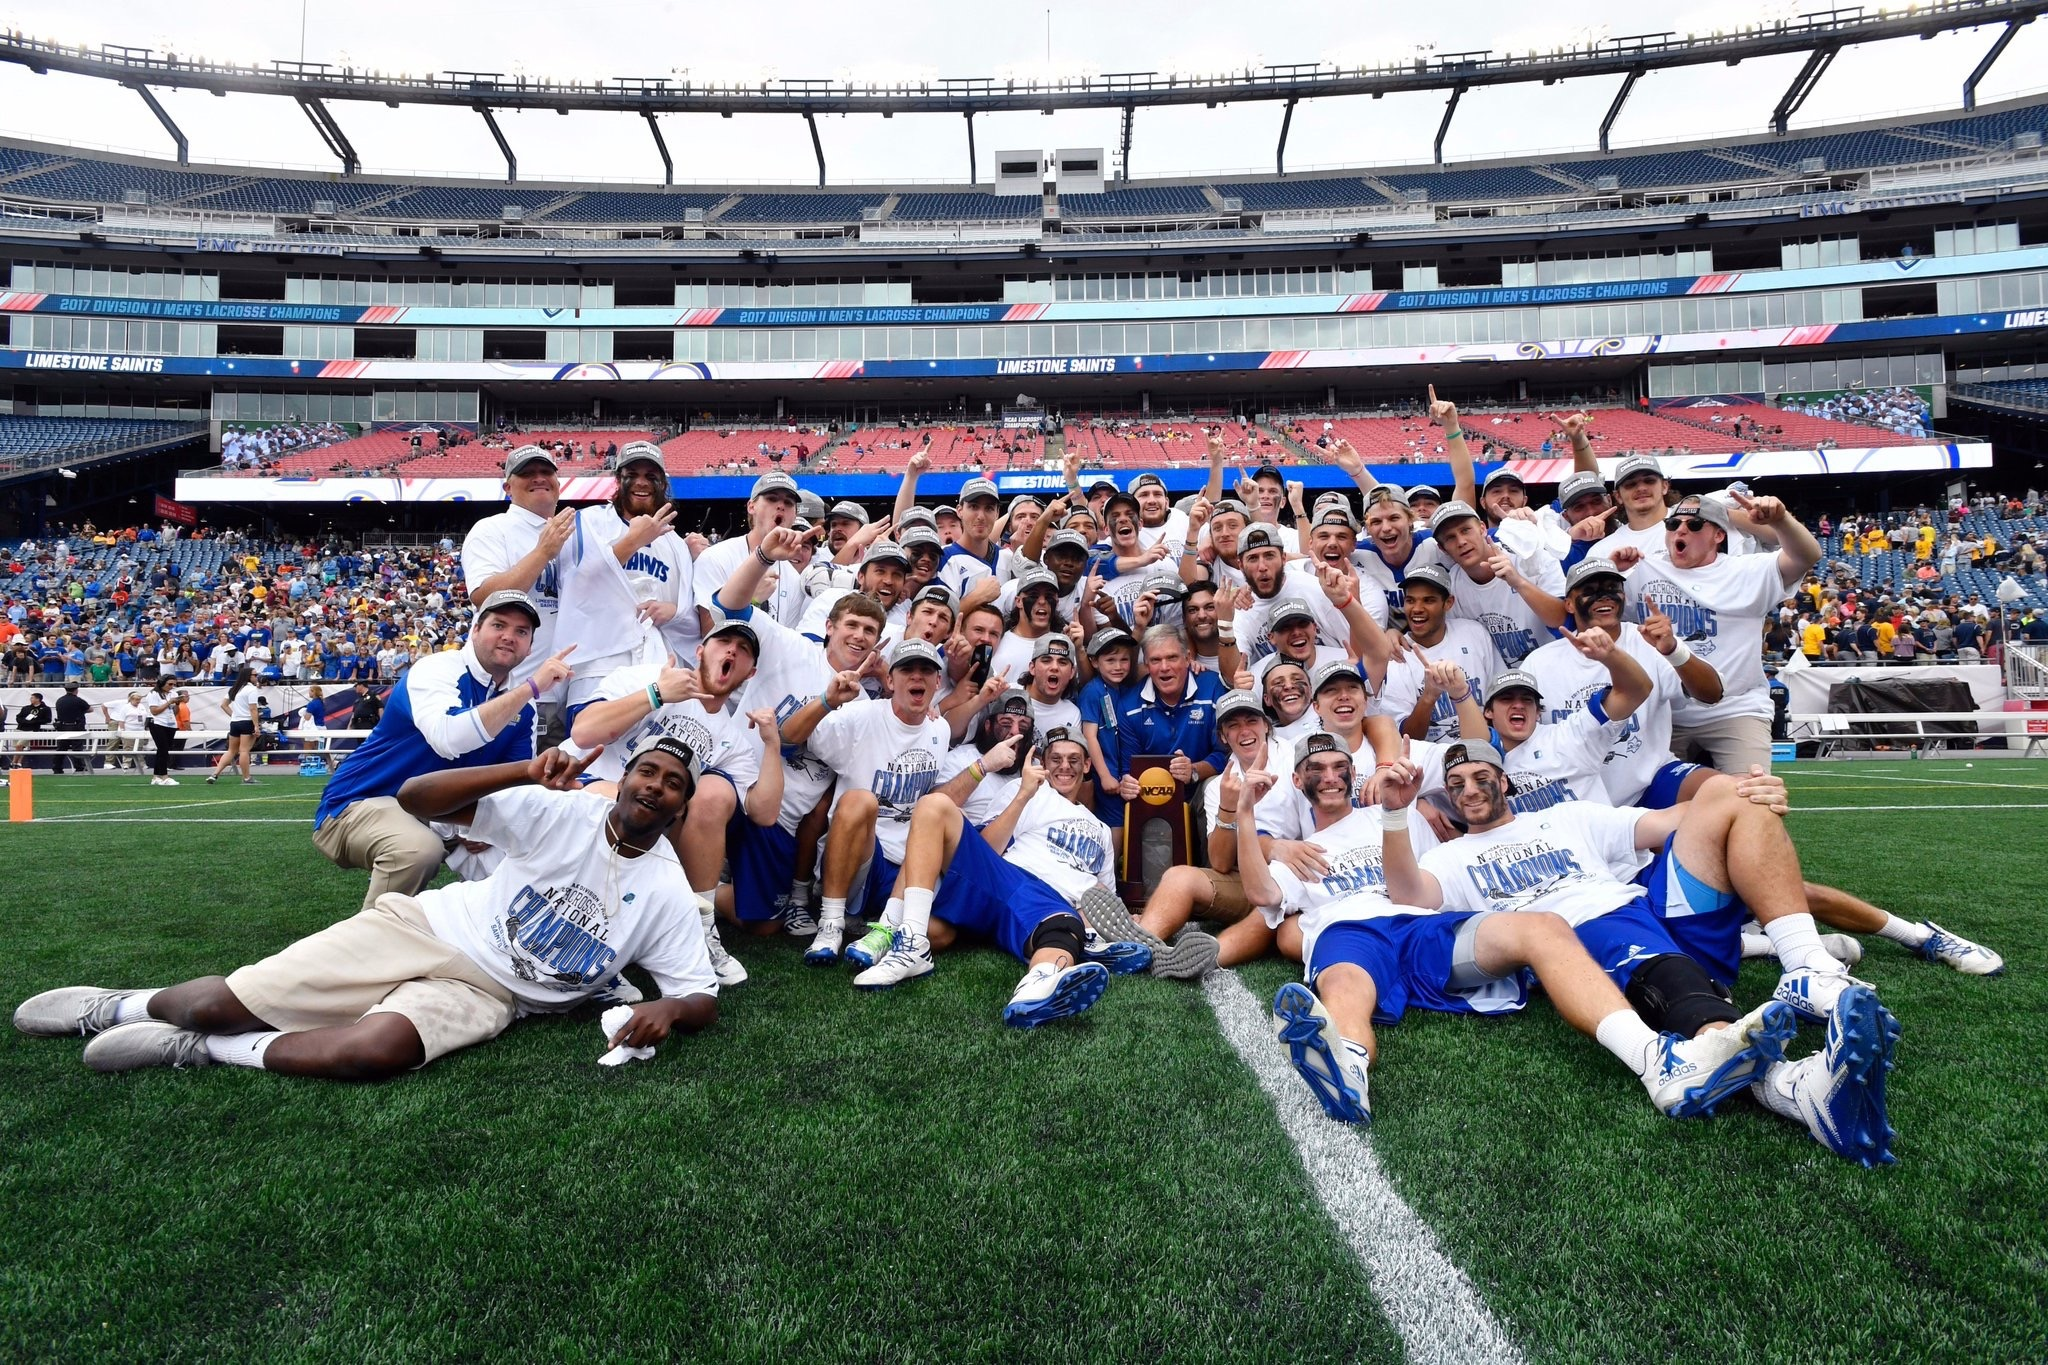 LIMESTONE GOES 12-0 ON SHAW SPORTS TURF EN ROUTE TO FIFTH NCAA TITLE Image